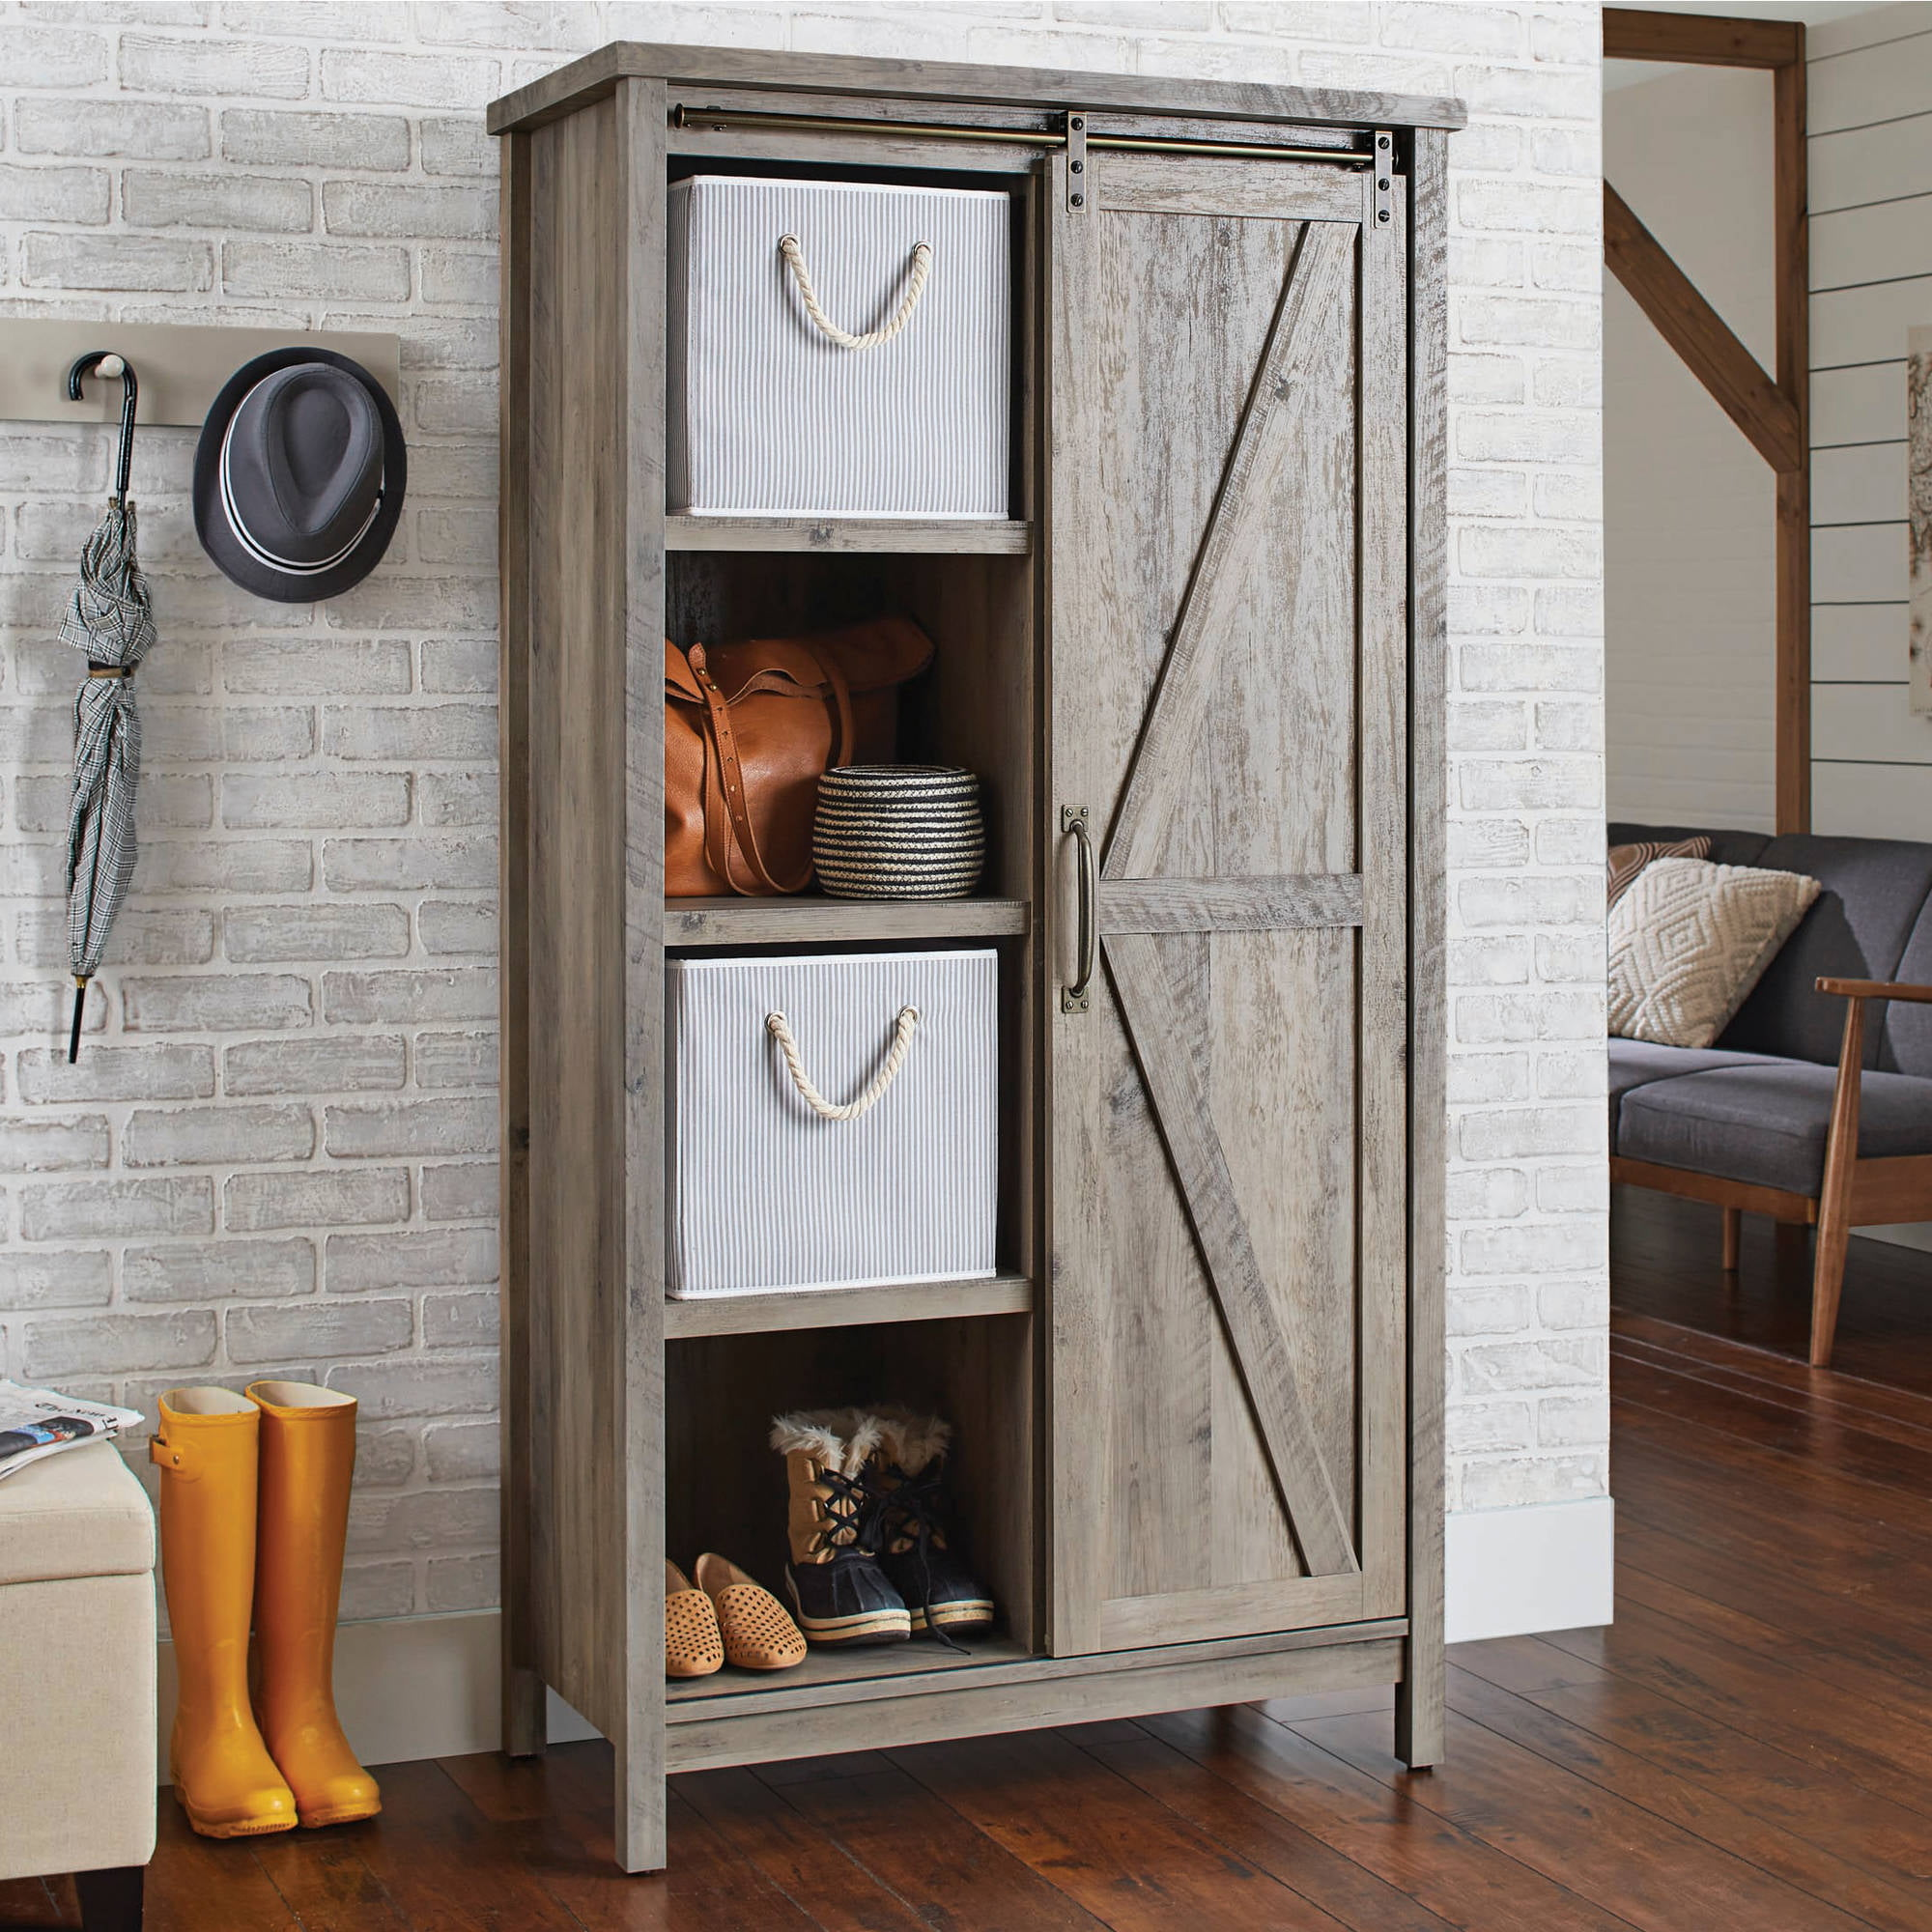 Better homes and gardens modern farmhouse storage cabinet Bhg homes